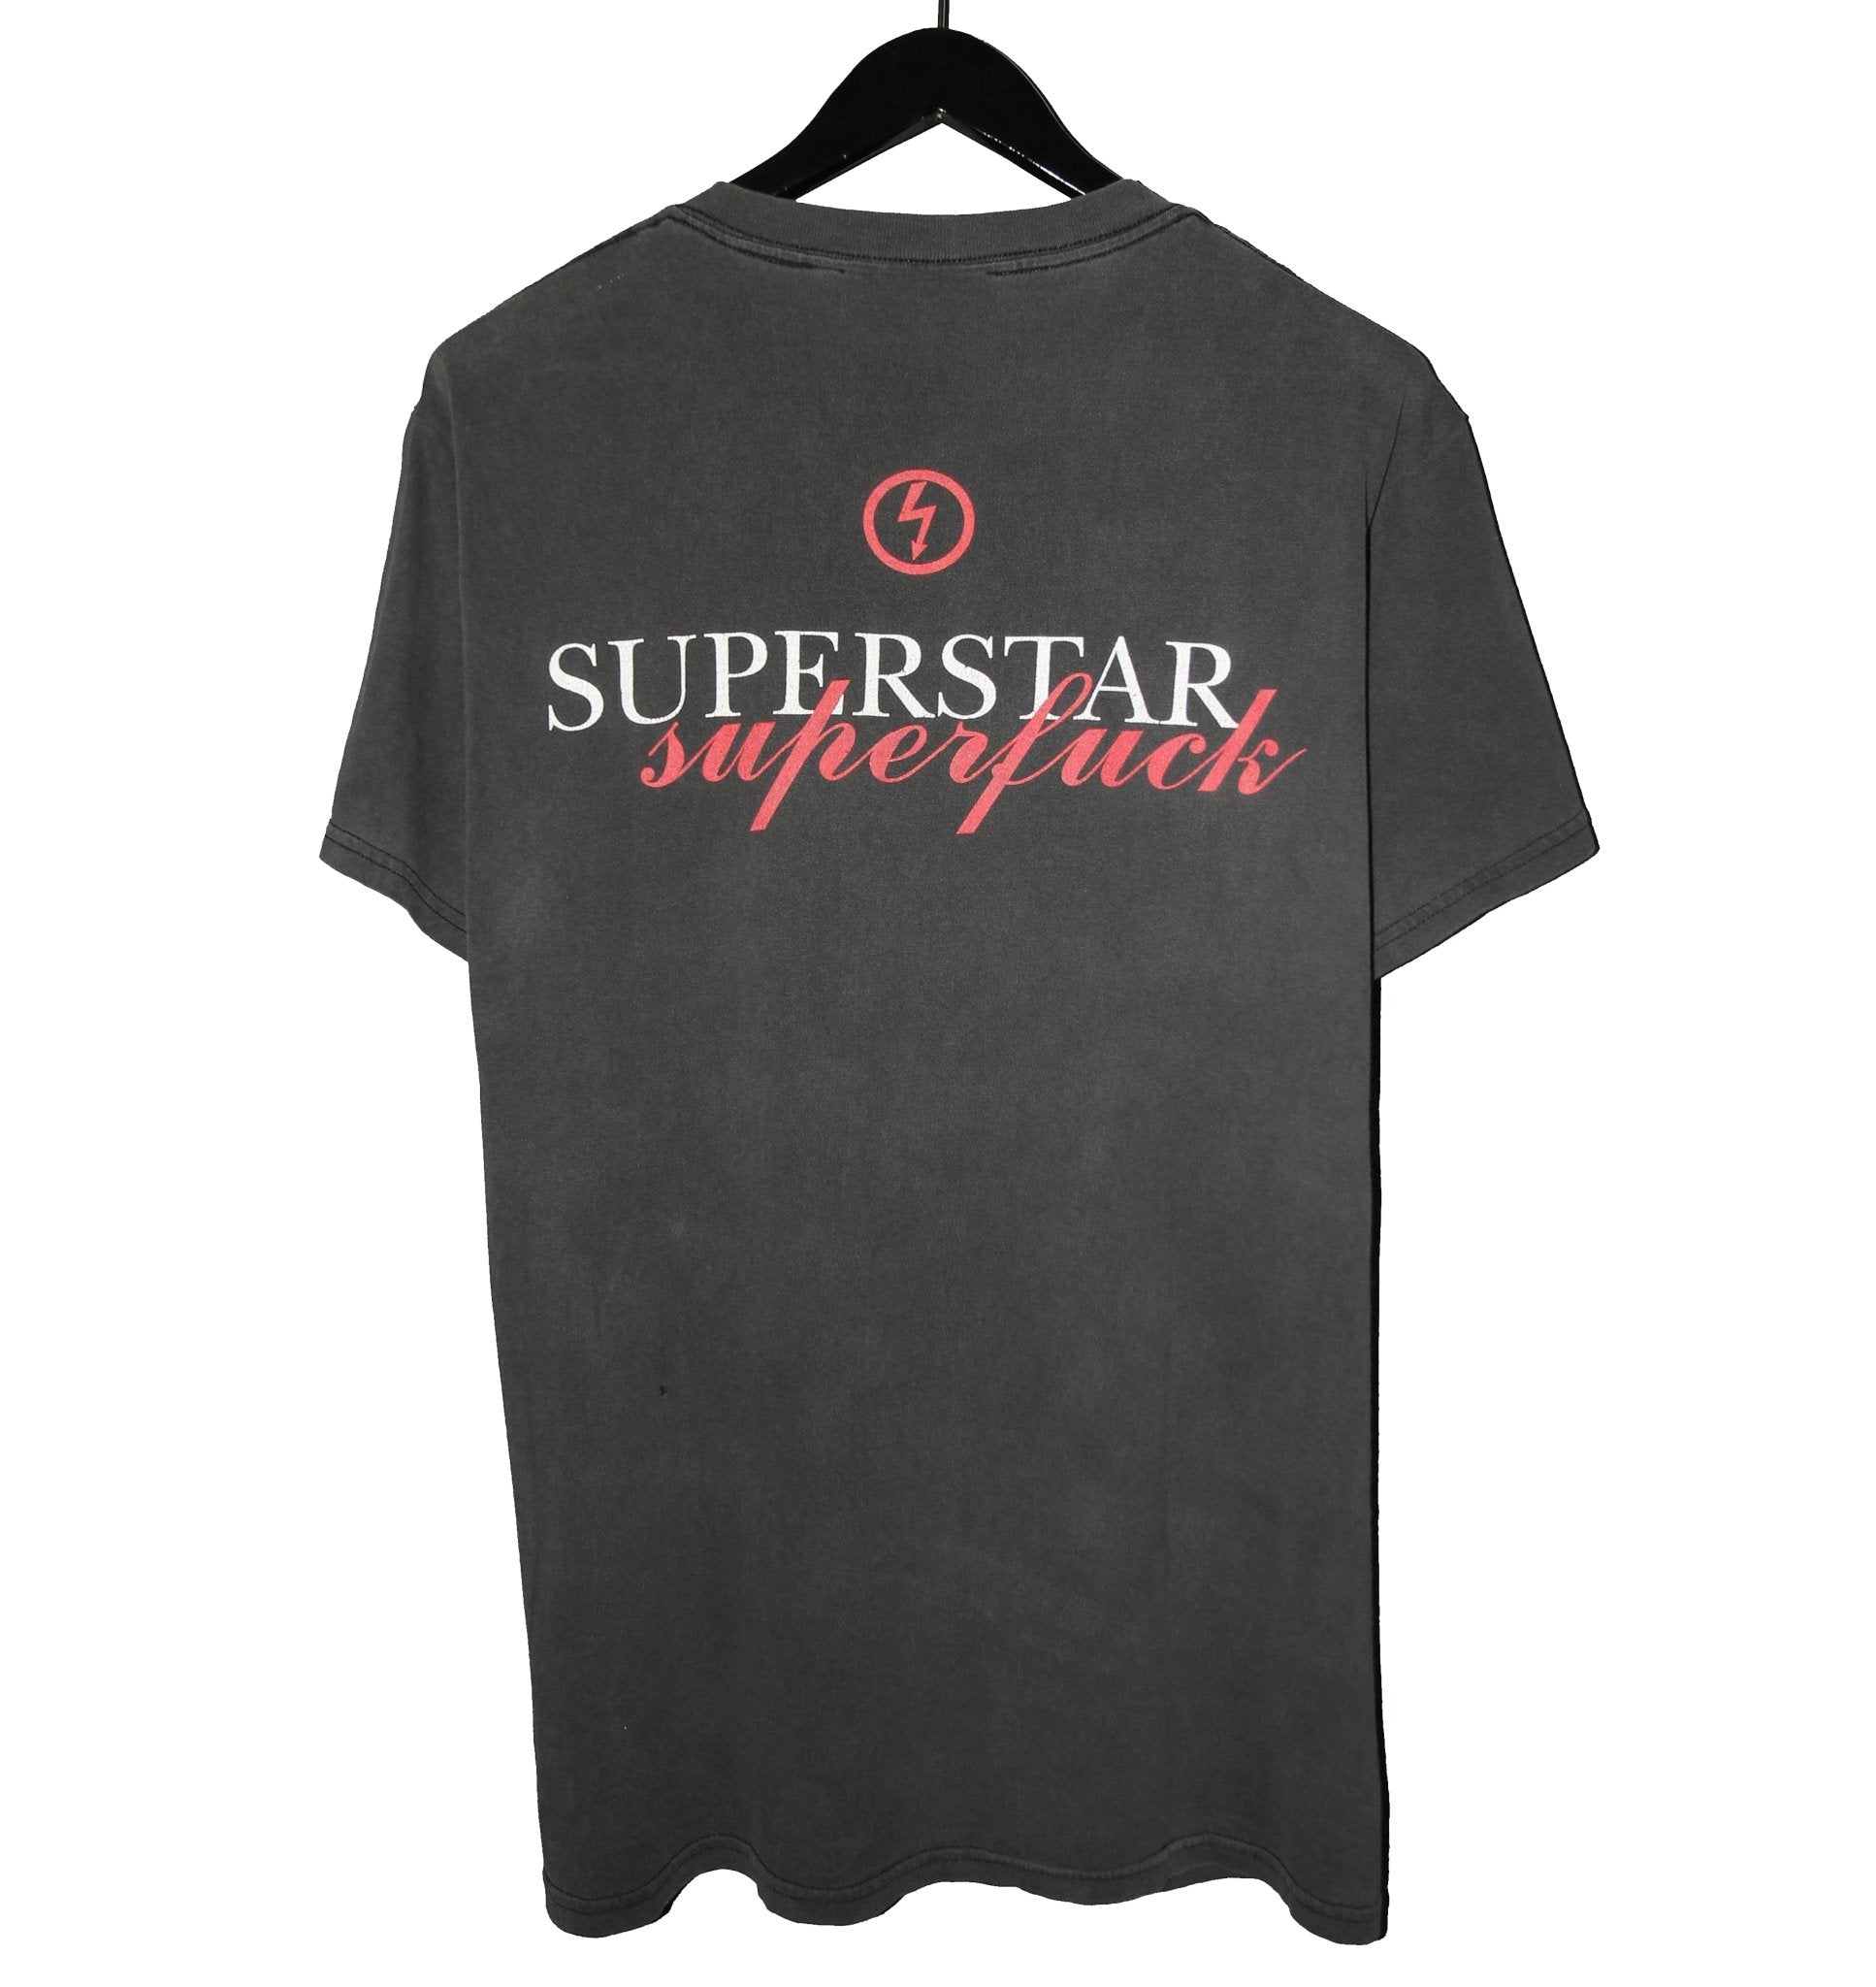 Marilyn Manson 1994 Superstar Shirt - Faded AU